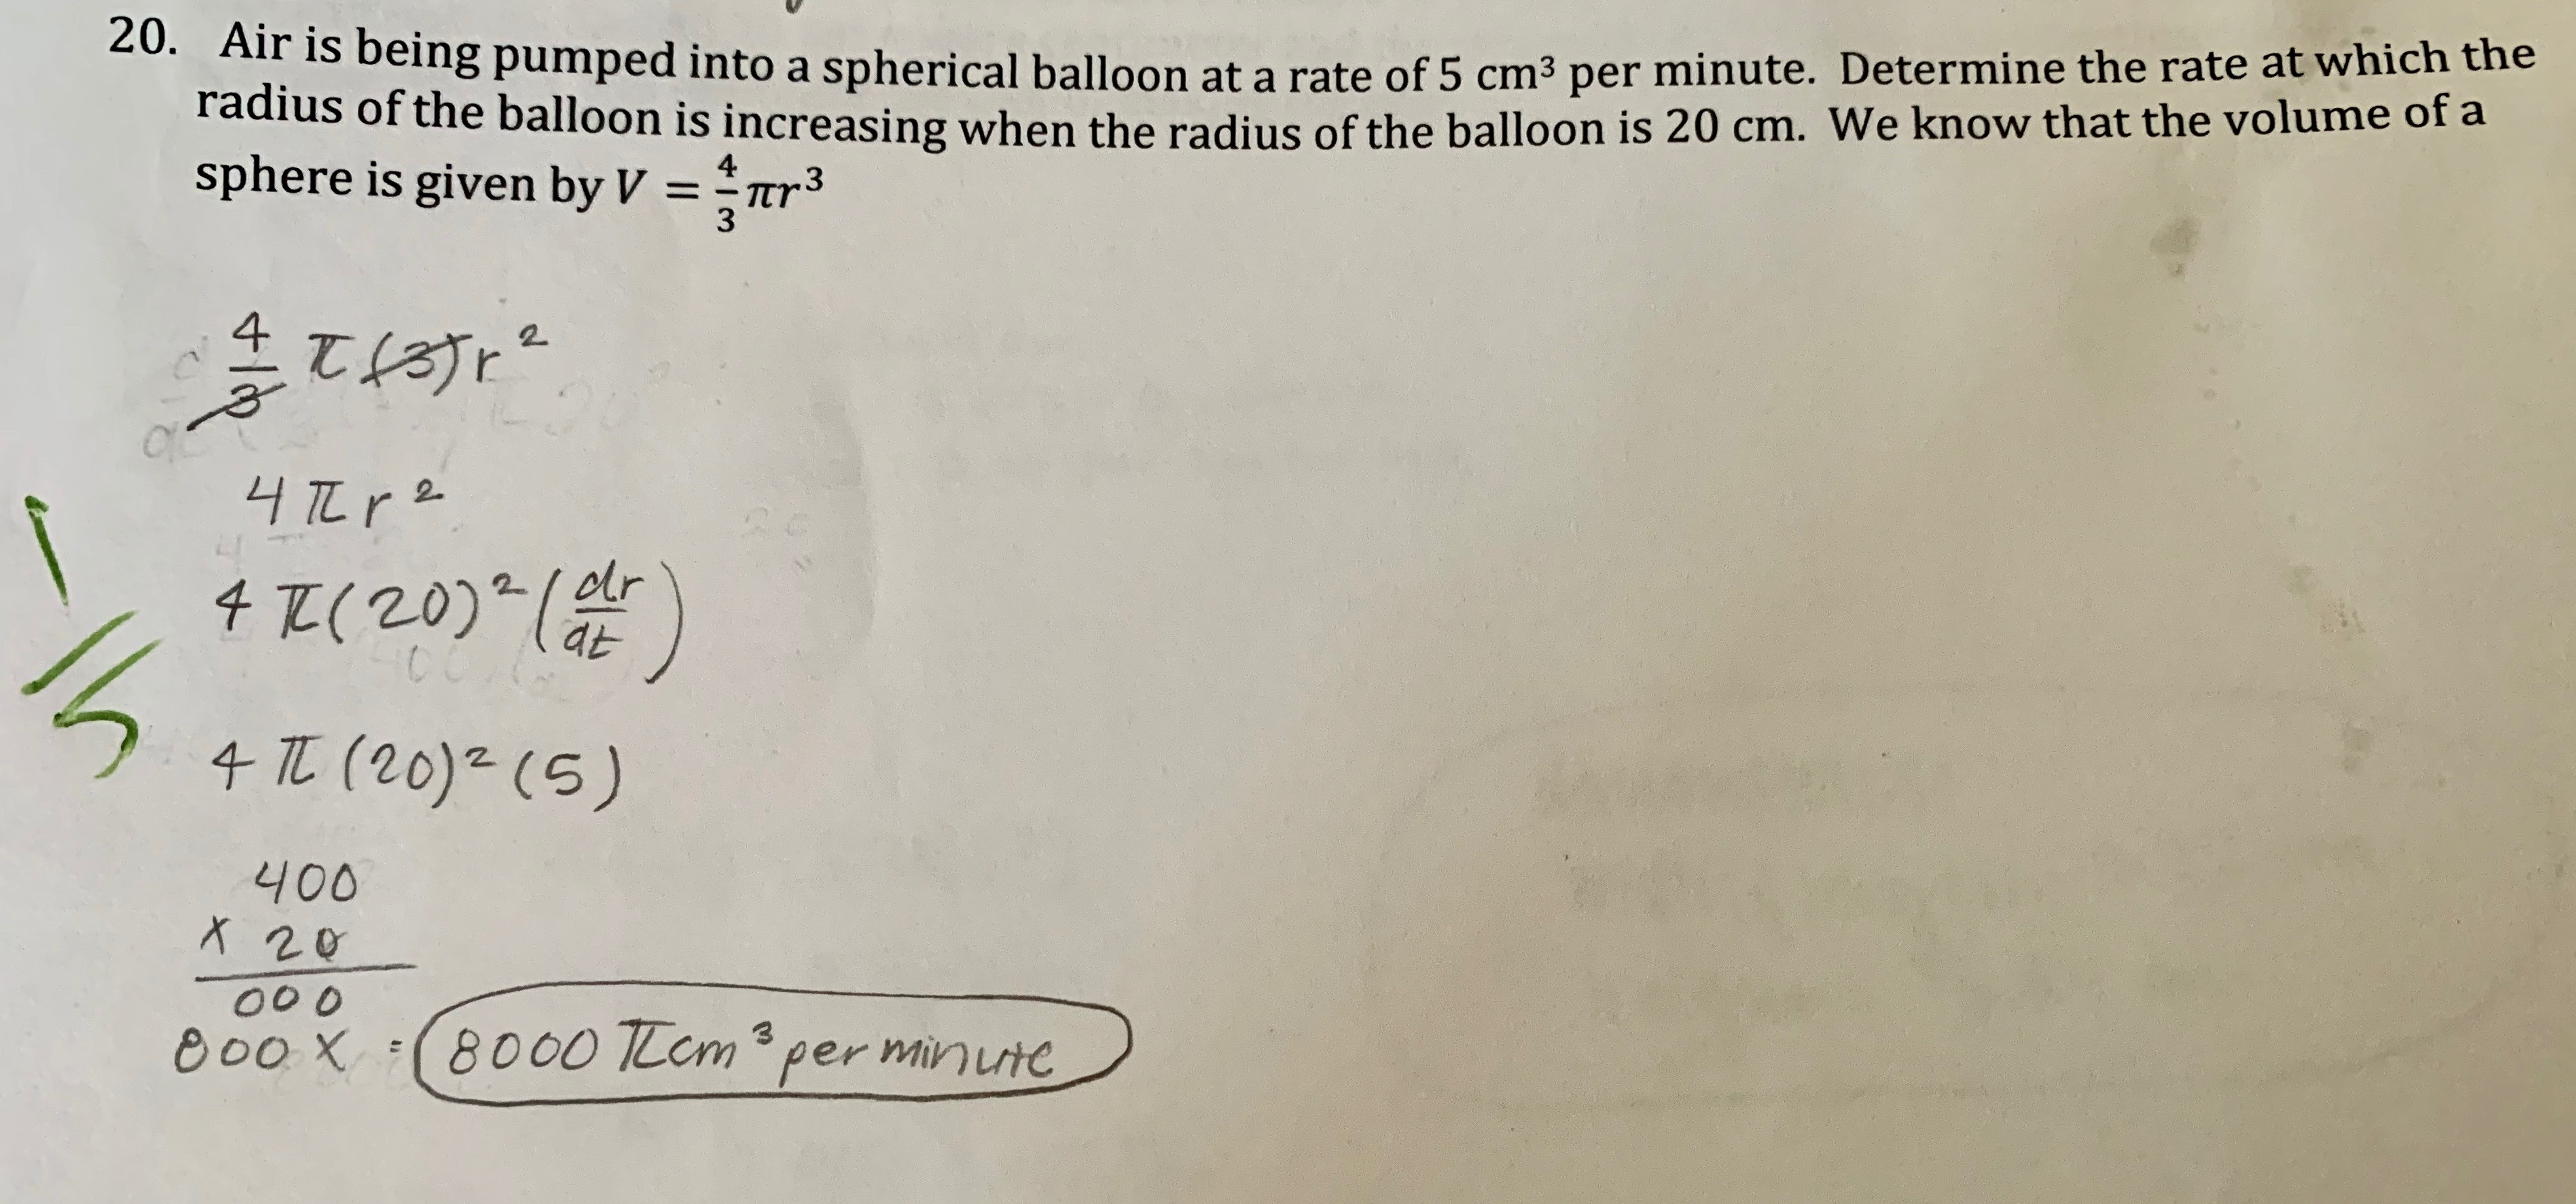 20. Air is being pumped into a spherical balloon at a rate of 5 cm3 per minute. Determine the rate at which the radius of the balloon is increasing when the radius of the balloon is 20 cm. We know that the volume of a sphere is given by V 4 .3 Tr 3 1 2 4 (20)(r CC 4 (20) (5) 400 X 20 00 0 8000 TLem per minutc 3 e00X